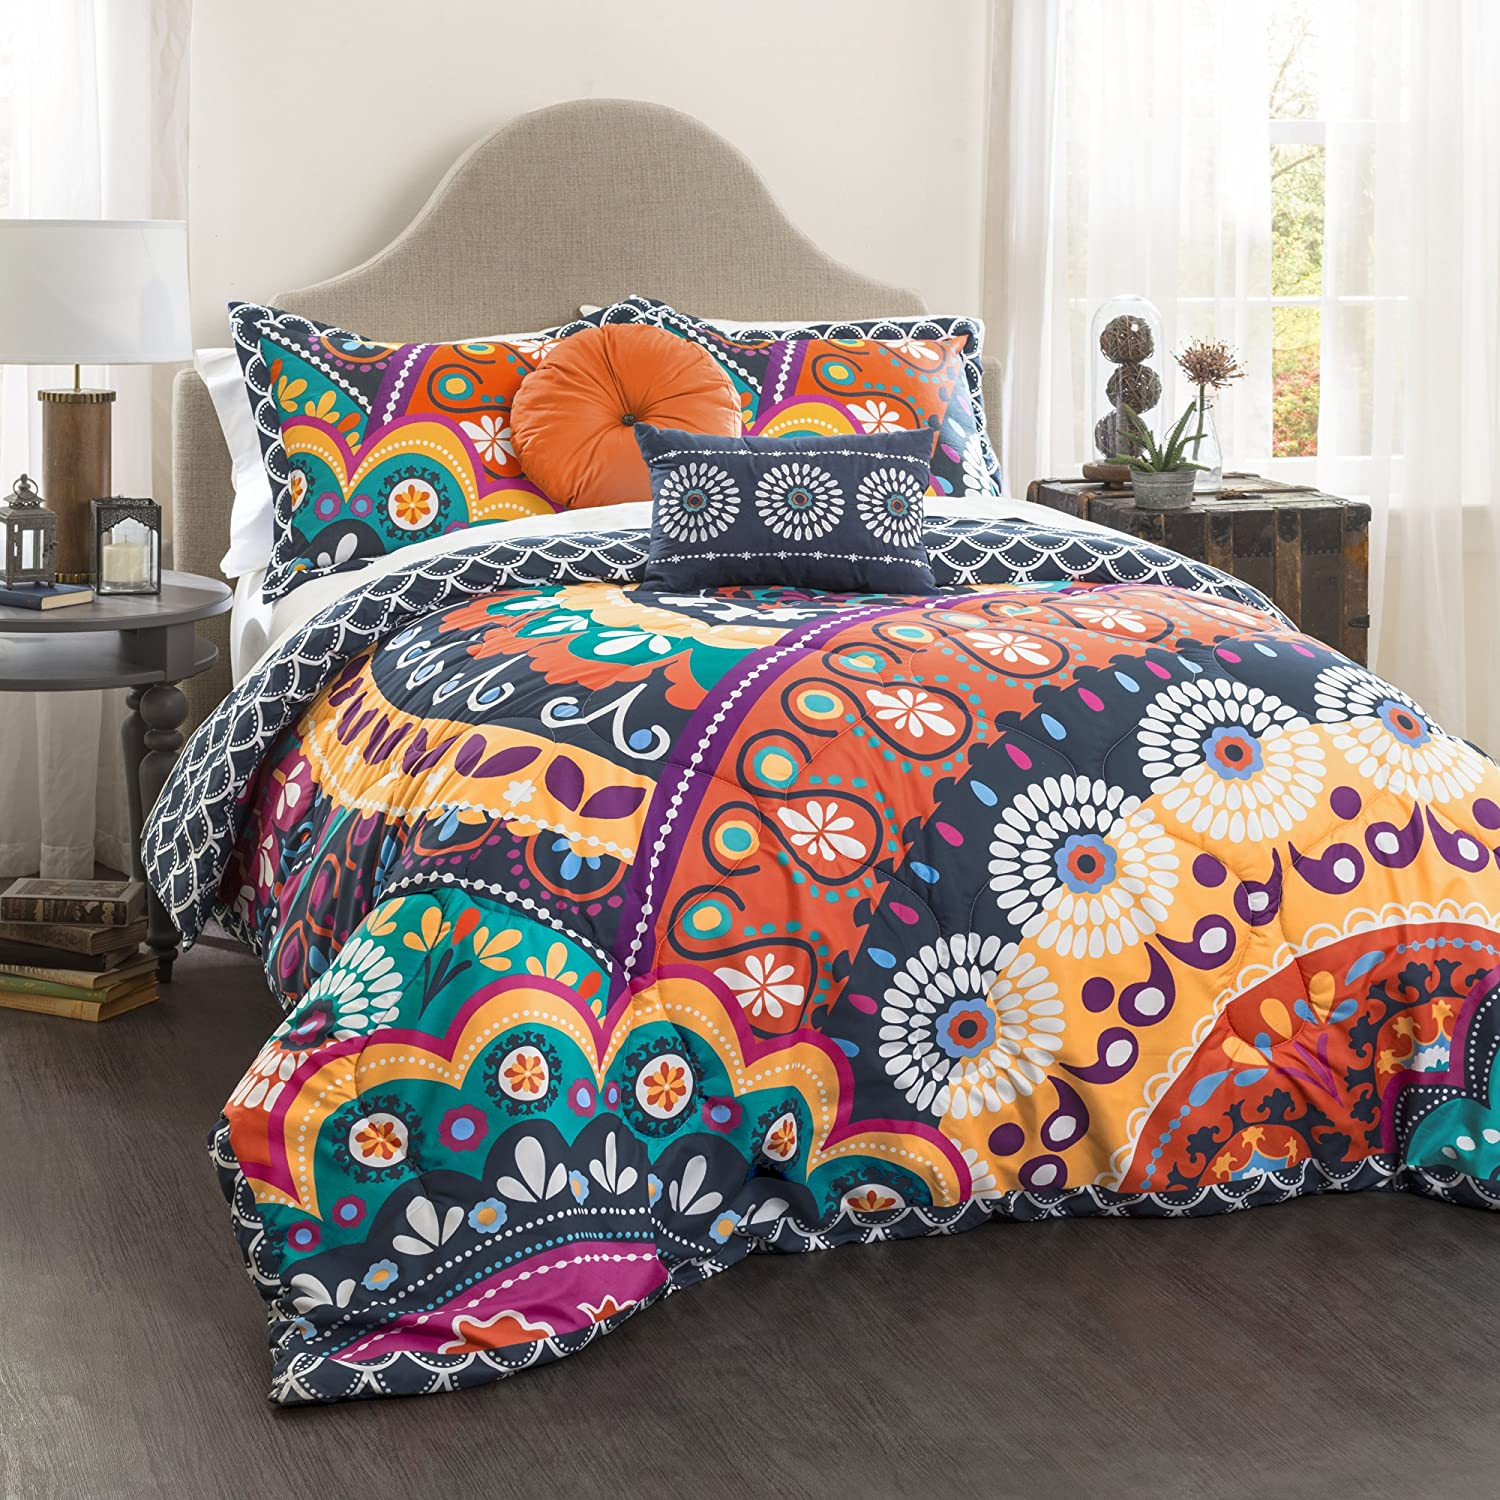 5 Piece Maya Quilted Comforter Set, King, Navy/Orange